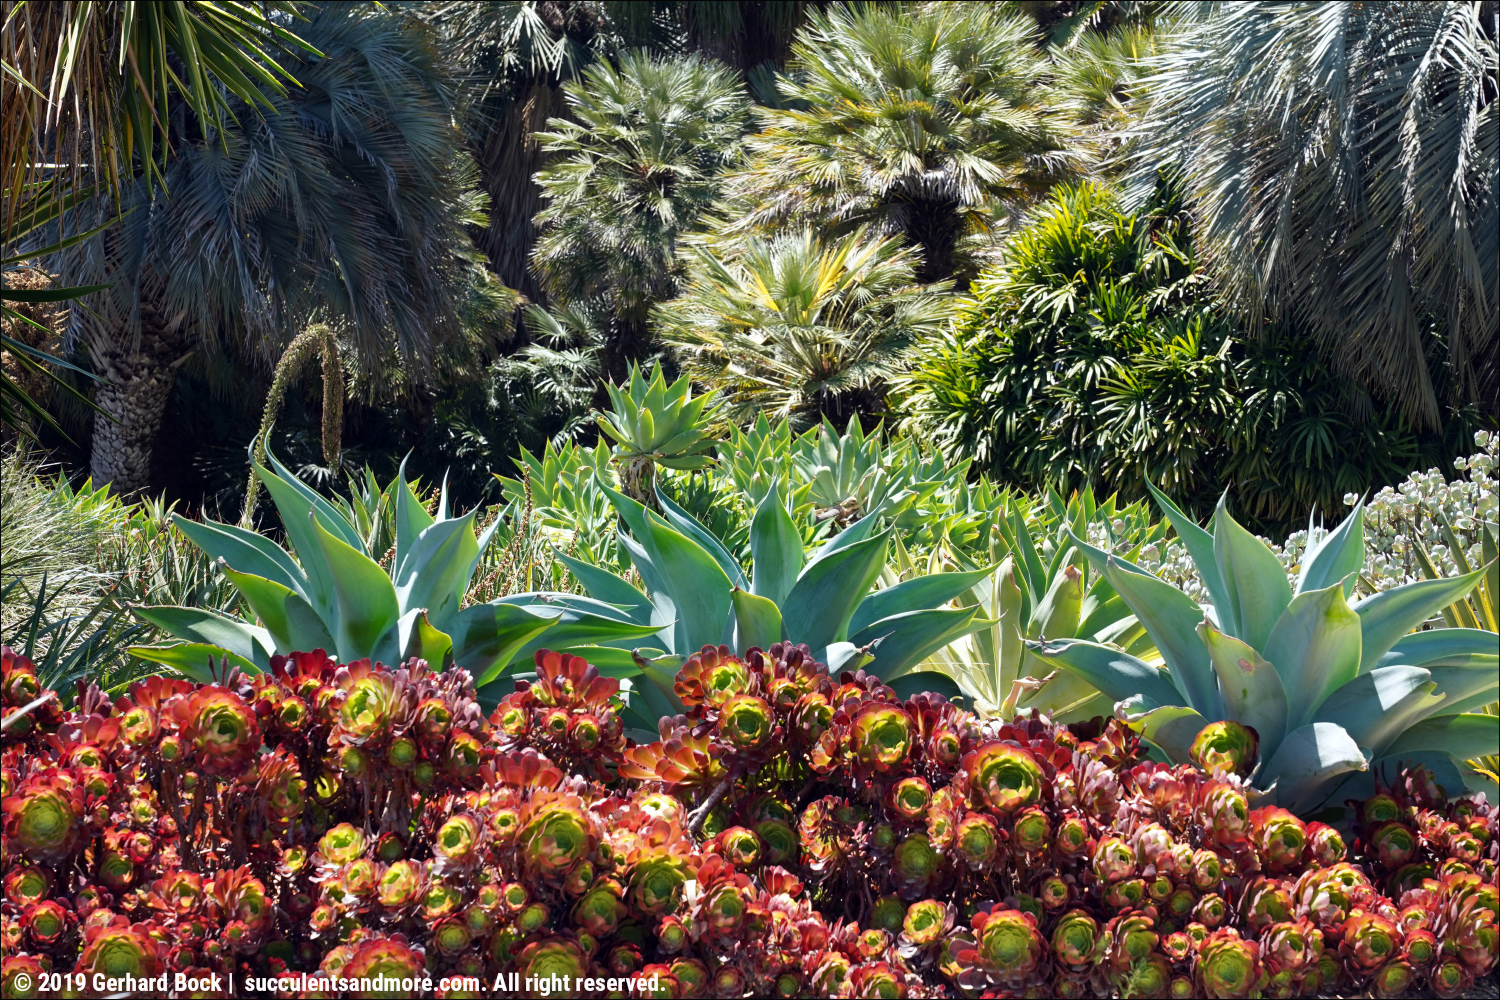 Succulents And More Huntington Botanical Gardens Much More Than